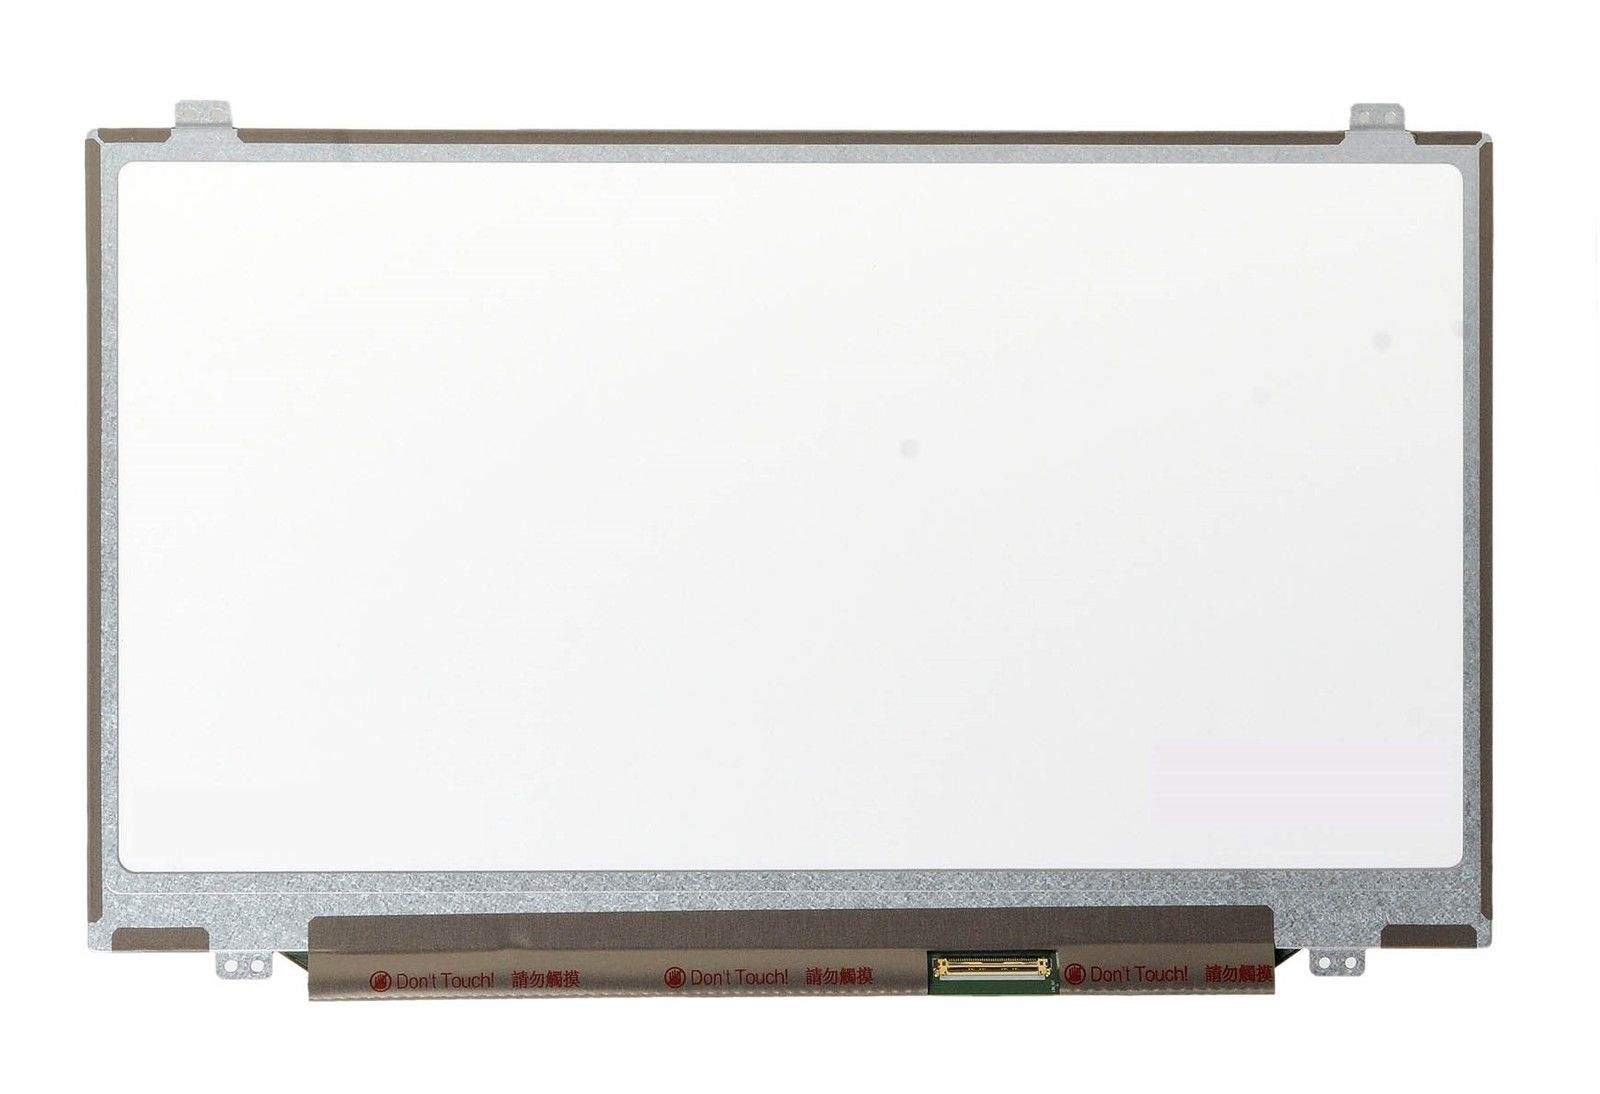 LP140WH2(TL)(S1) New 14.0 WXGA HD Slim LED LCD Screen Panel LP140WH2-TLQ1 new laptop 15 6 wxga slim led lcd screen display fits n156bge l31 b156xtn03 4 lp156wh3 tl bc